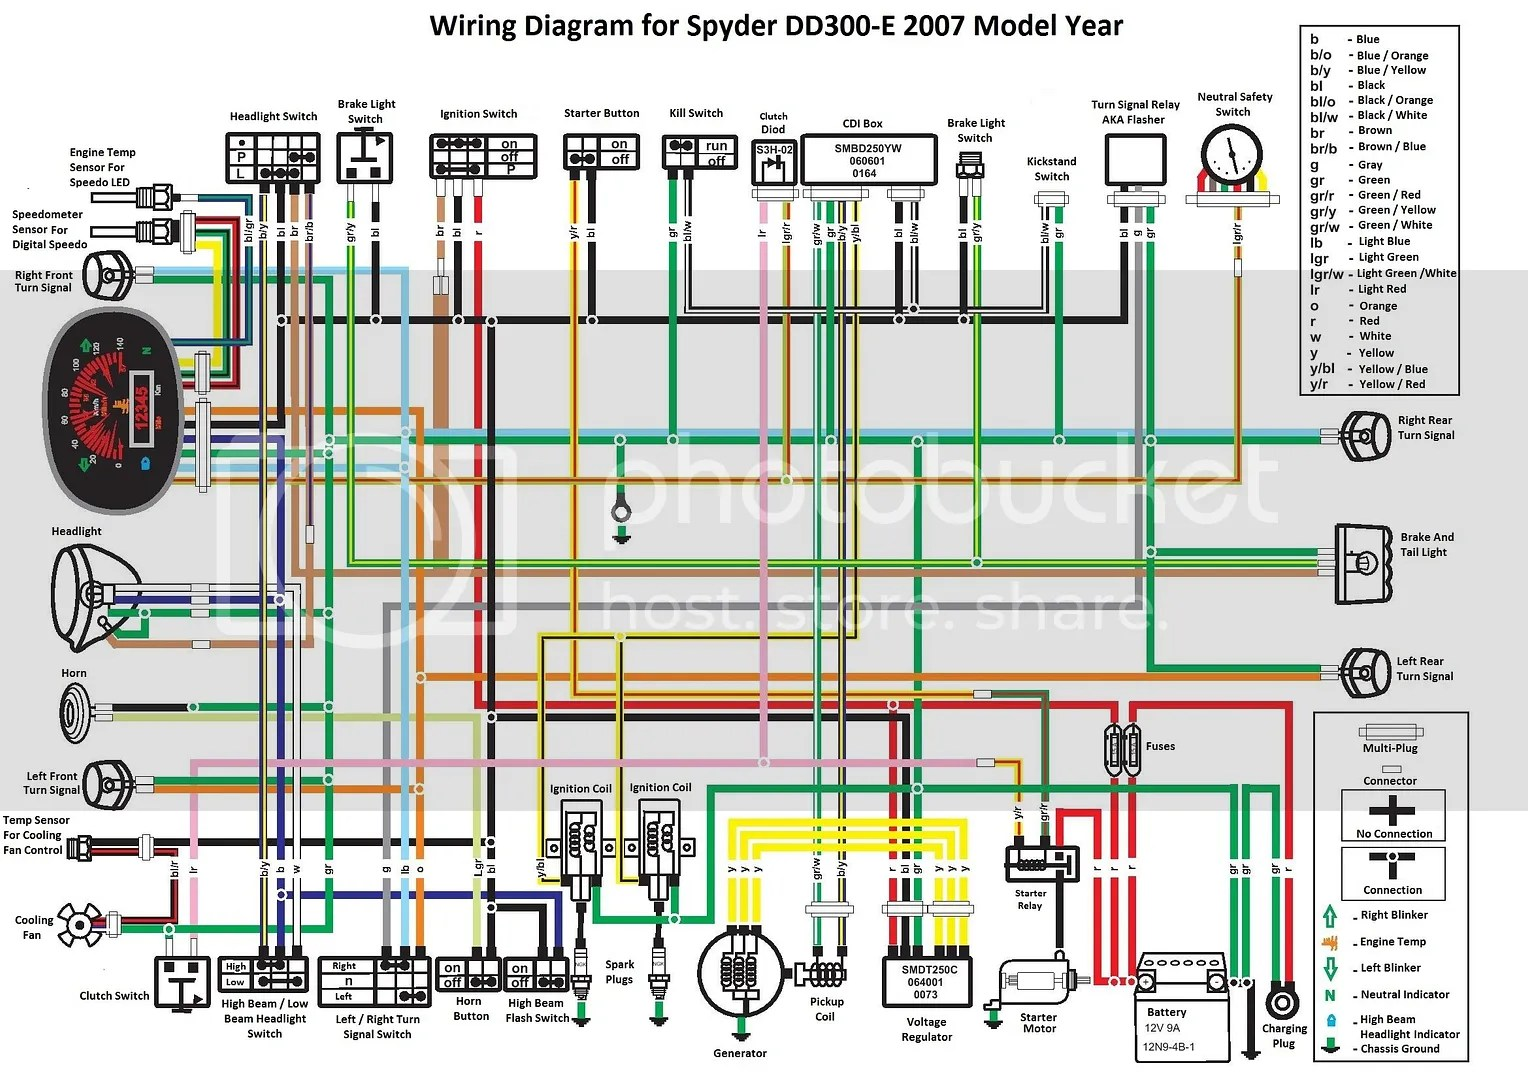 NEWWIRINGDIAGRAM page 001 1?resize=665%2C470 yamaha virago 250 wiring diagram the best wiring diagram 2017 yamaha virago 250 wiring diagram at et-consult.org